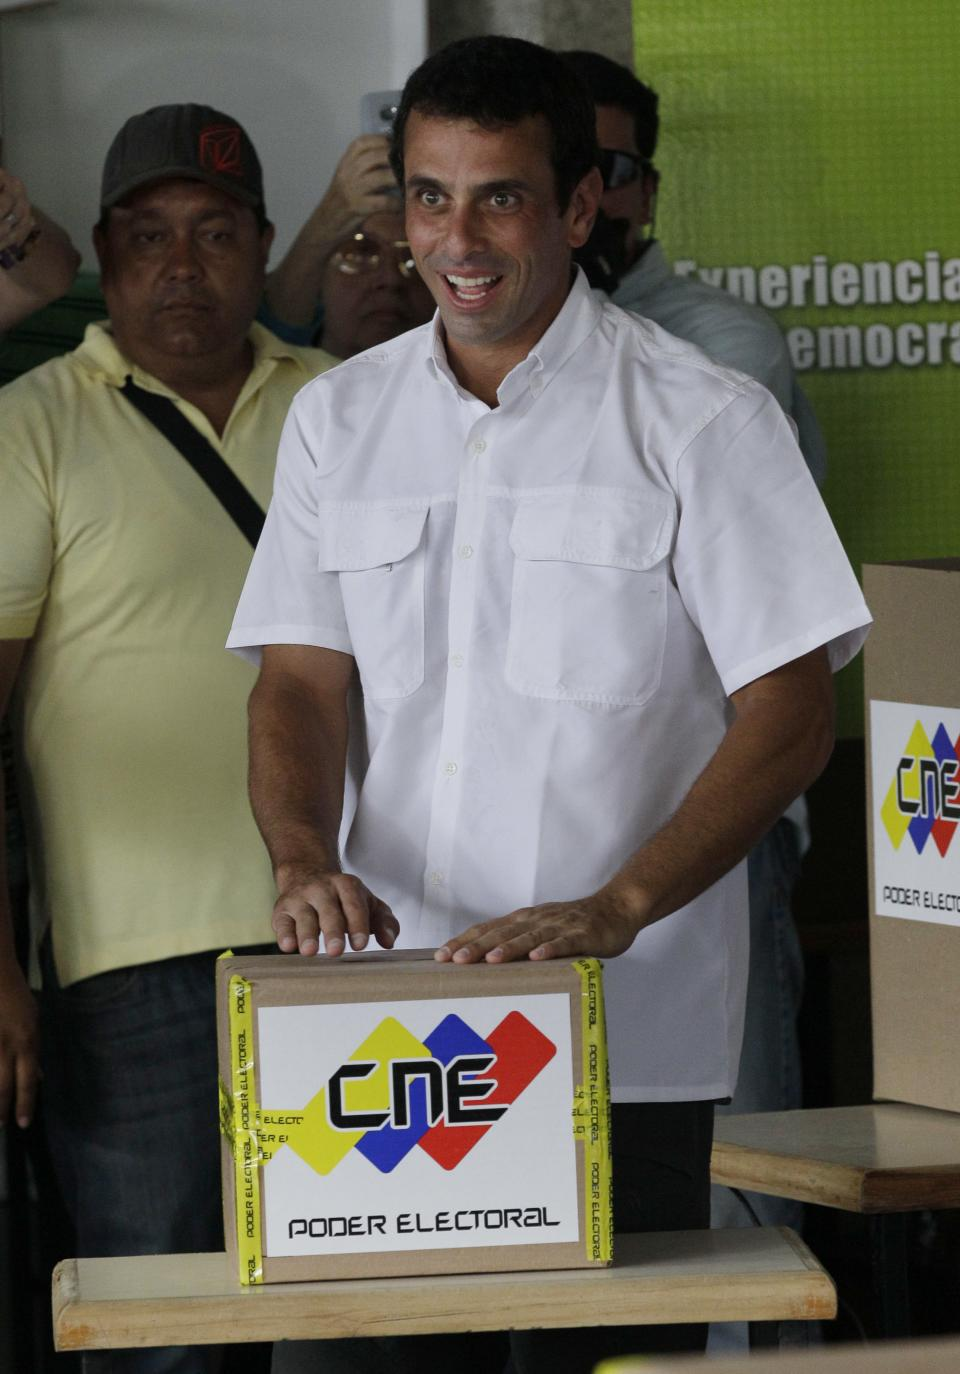 Opposition presidential candidate Henrique Capriles casts his ballot in the presidential election in Caracas, Venezuela, Sunday, Oct. 7, 2012. Capriles is running against President Hugo Chavez. (AP Photo/Ariana Cubillos)